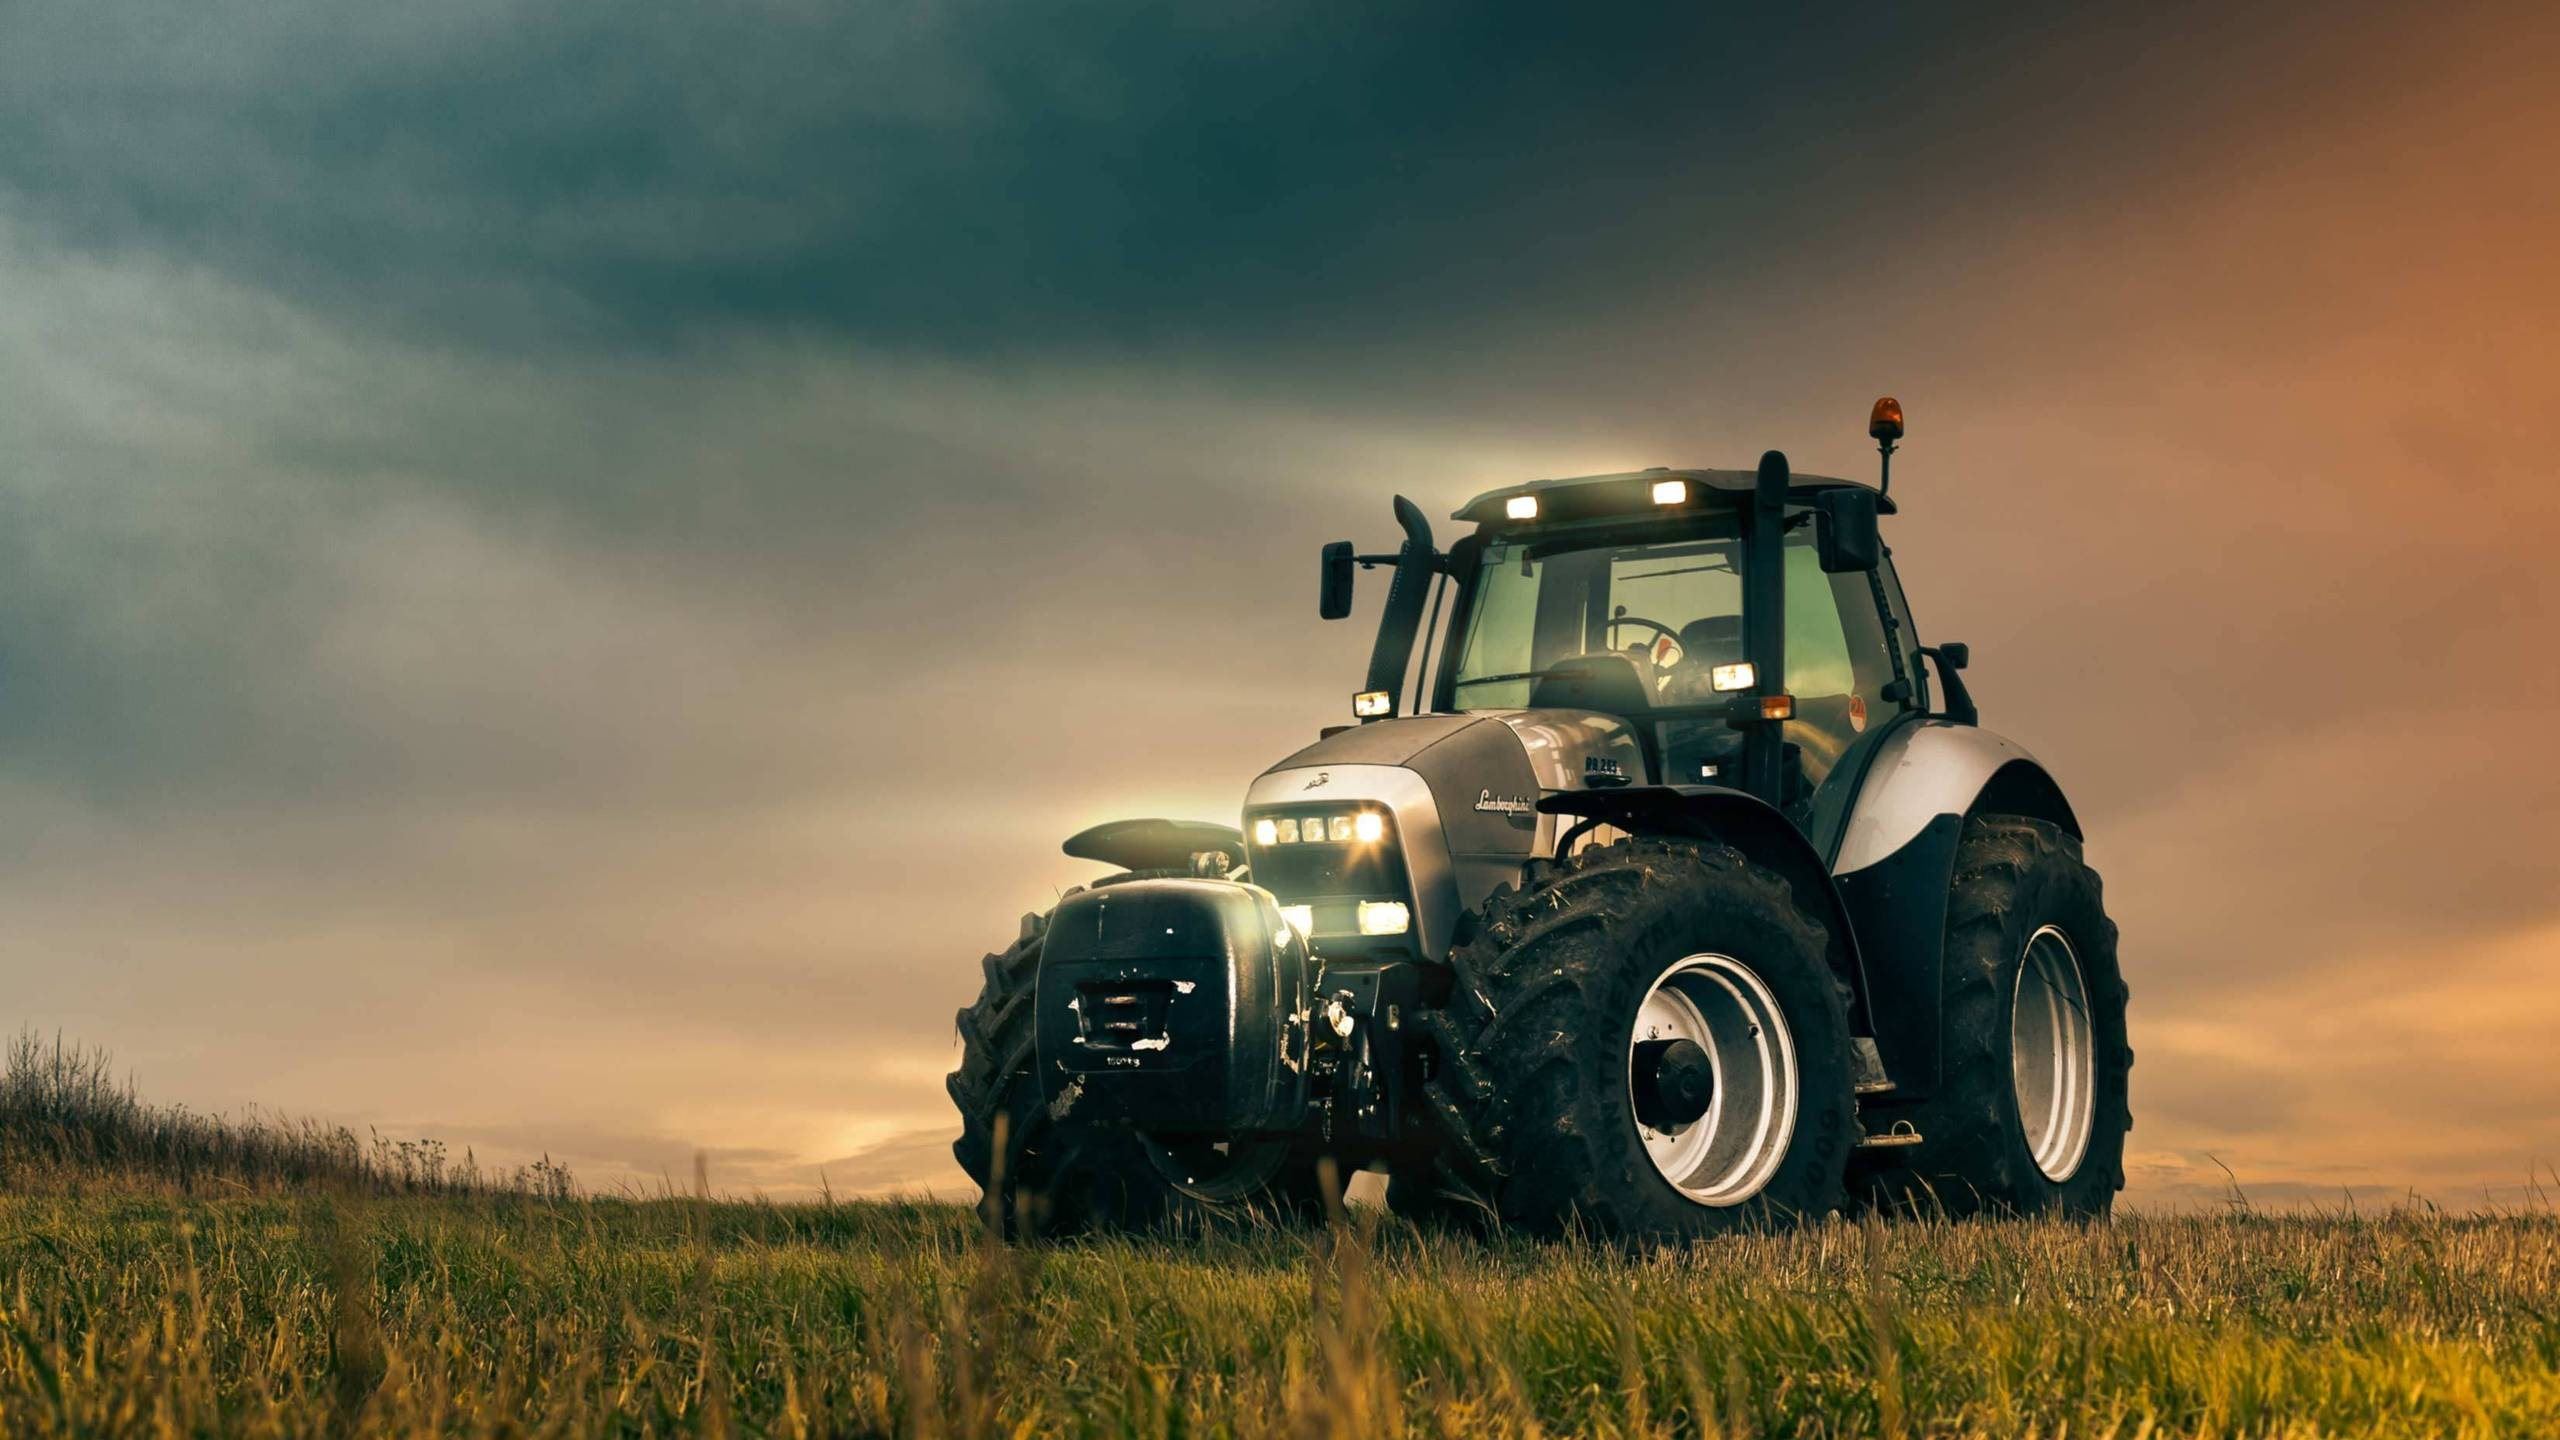 69 Tractor HD Wallpapers Background Images 2560x1440